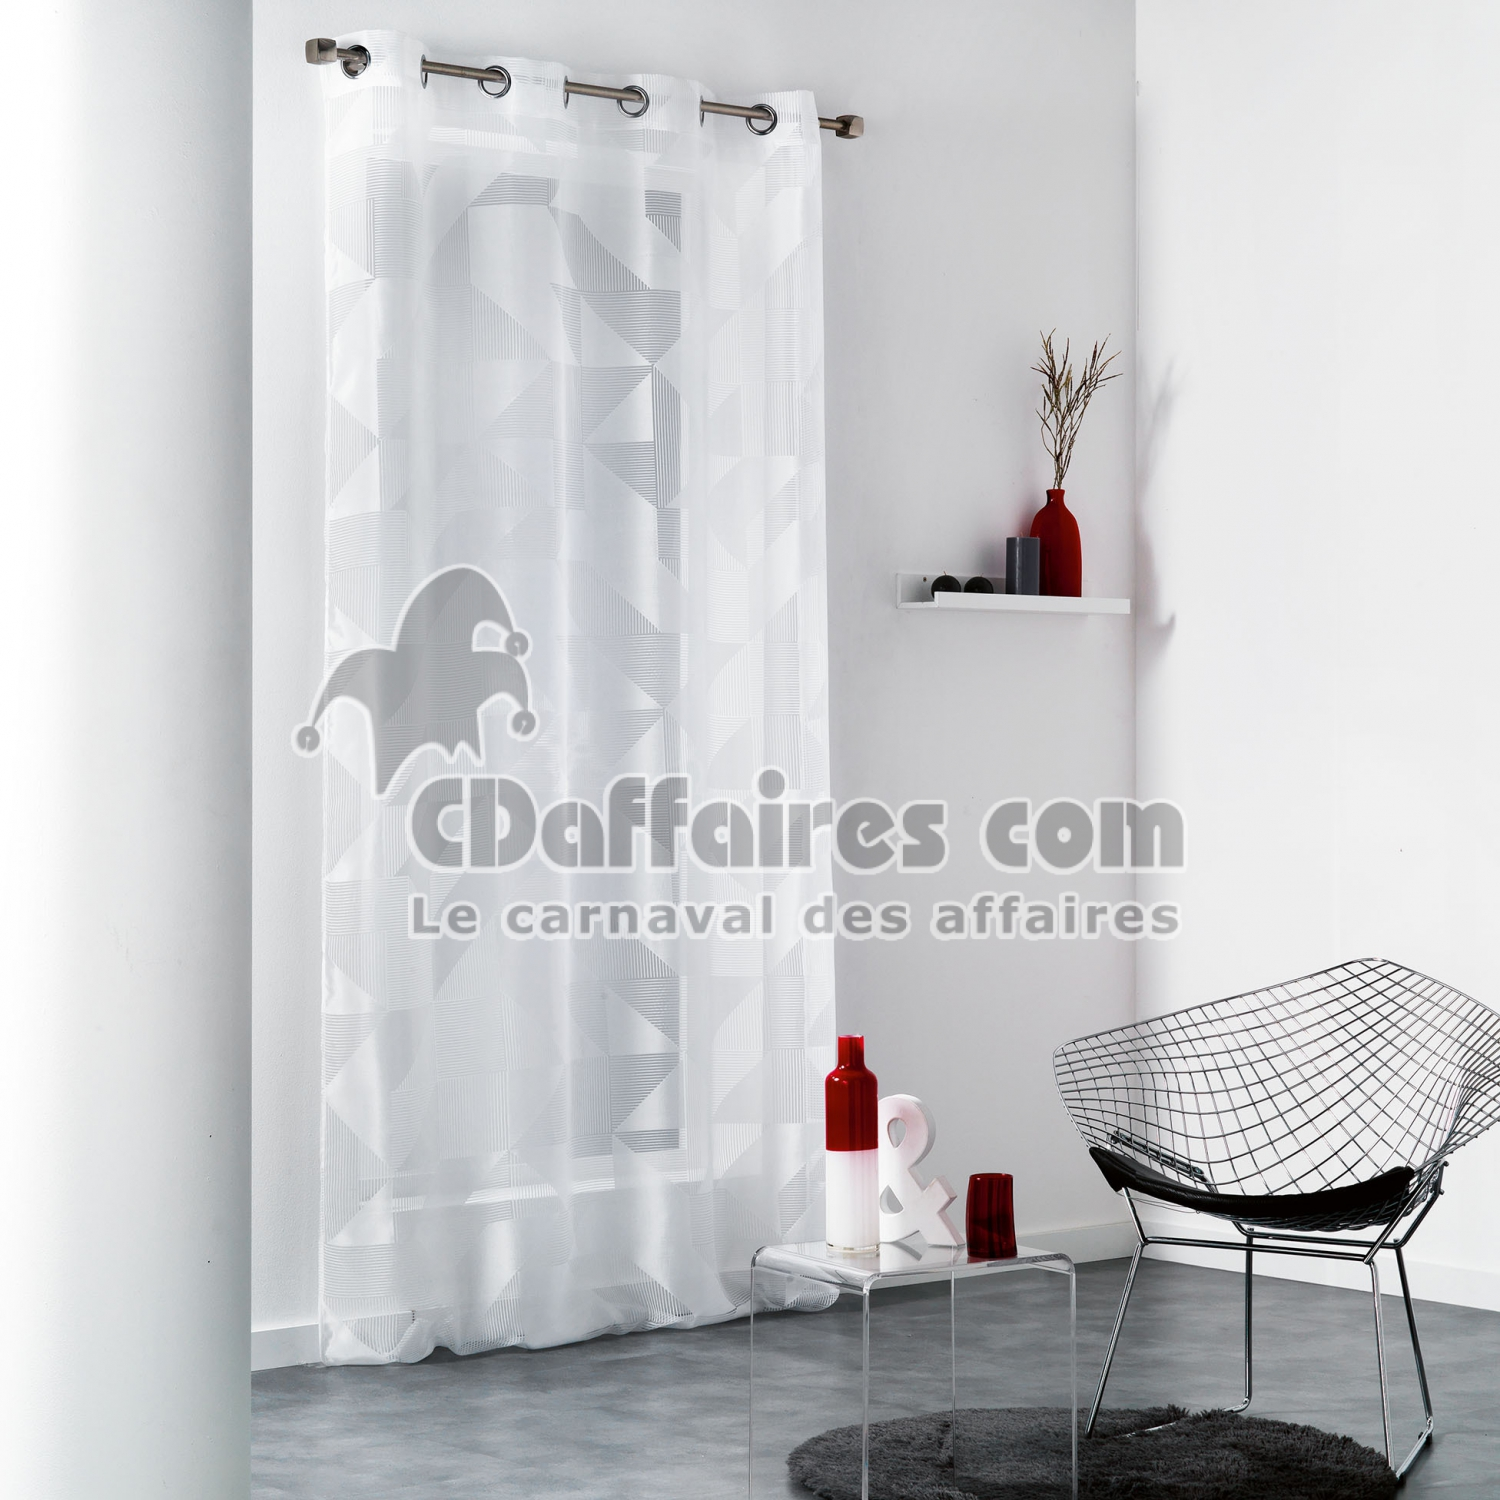 panneau a oeillets 140 x 280 cm organza devore galbiano blanc cdaffaires. Black Bedroom Furniture Sets. Home Design Ideas